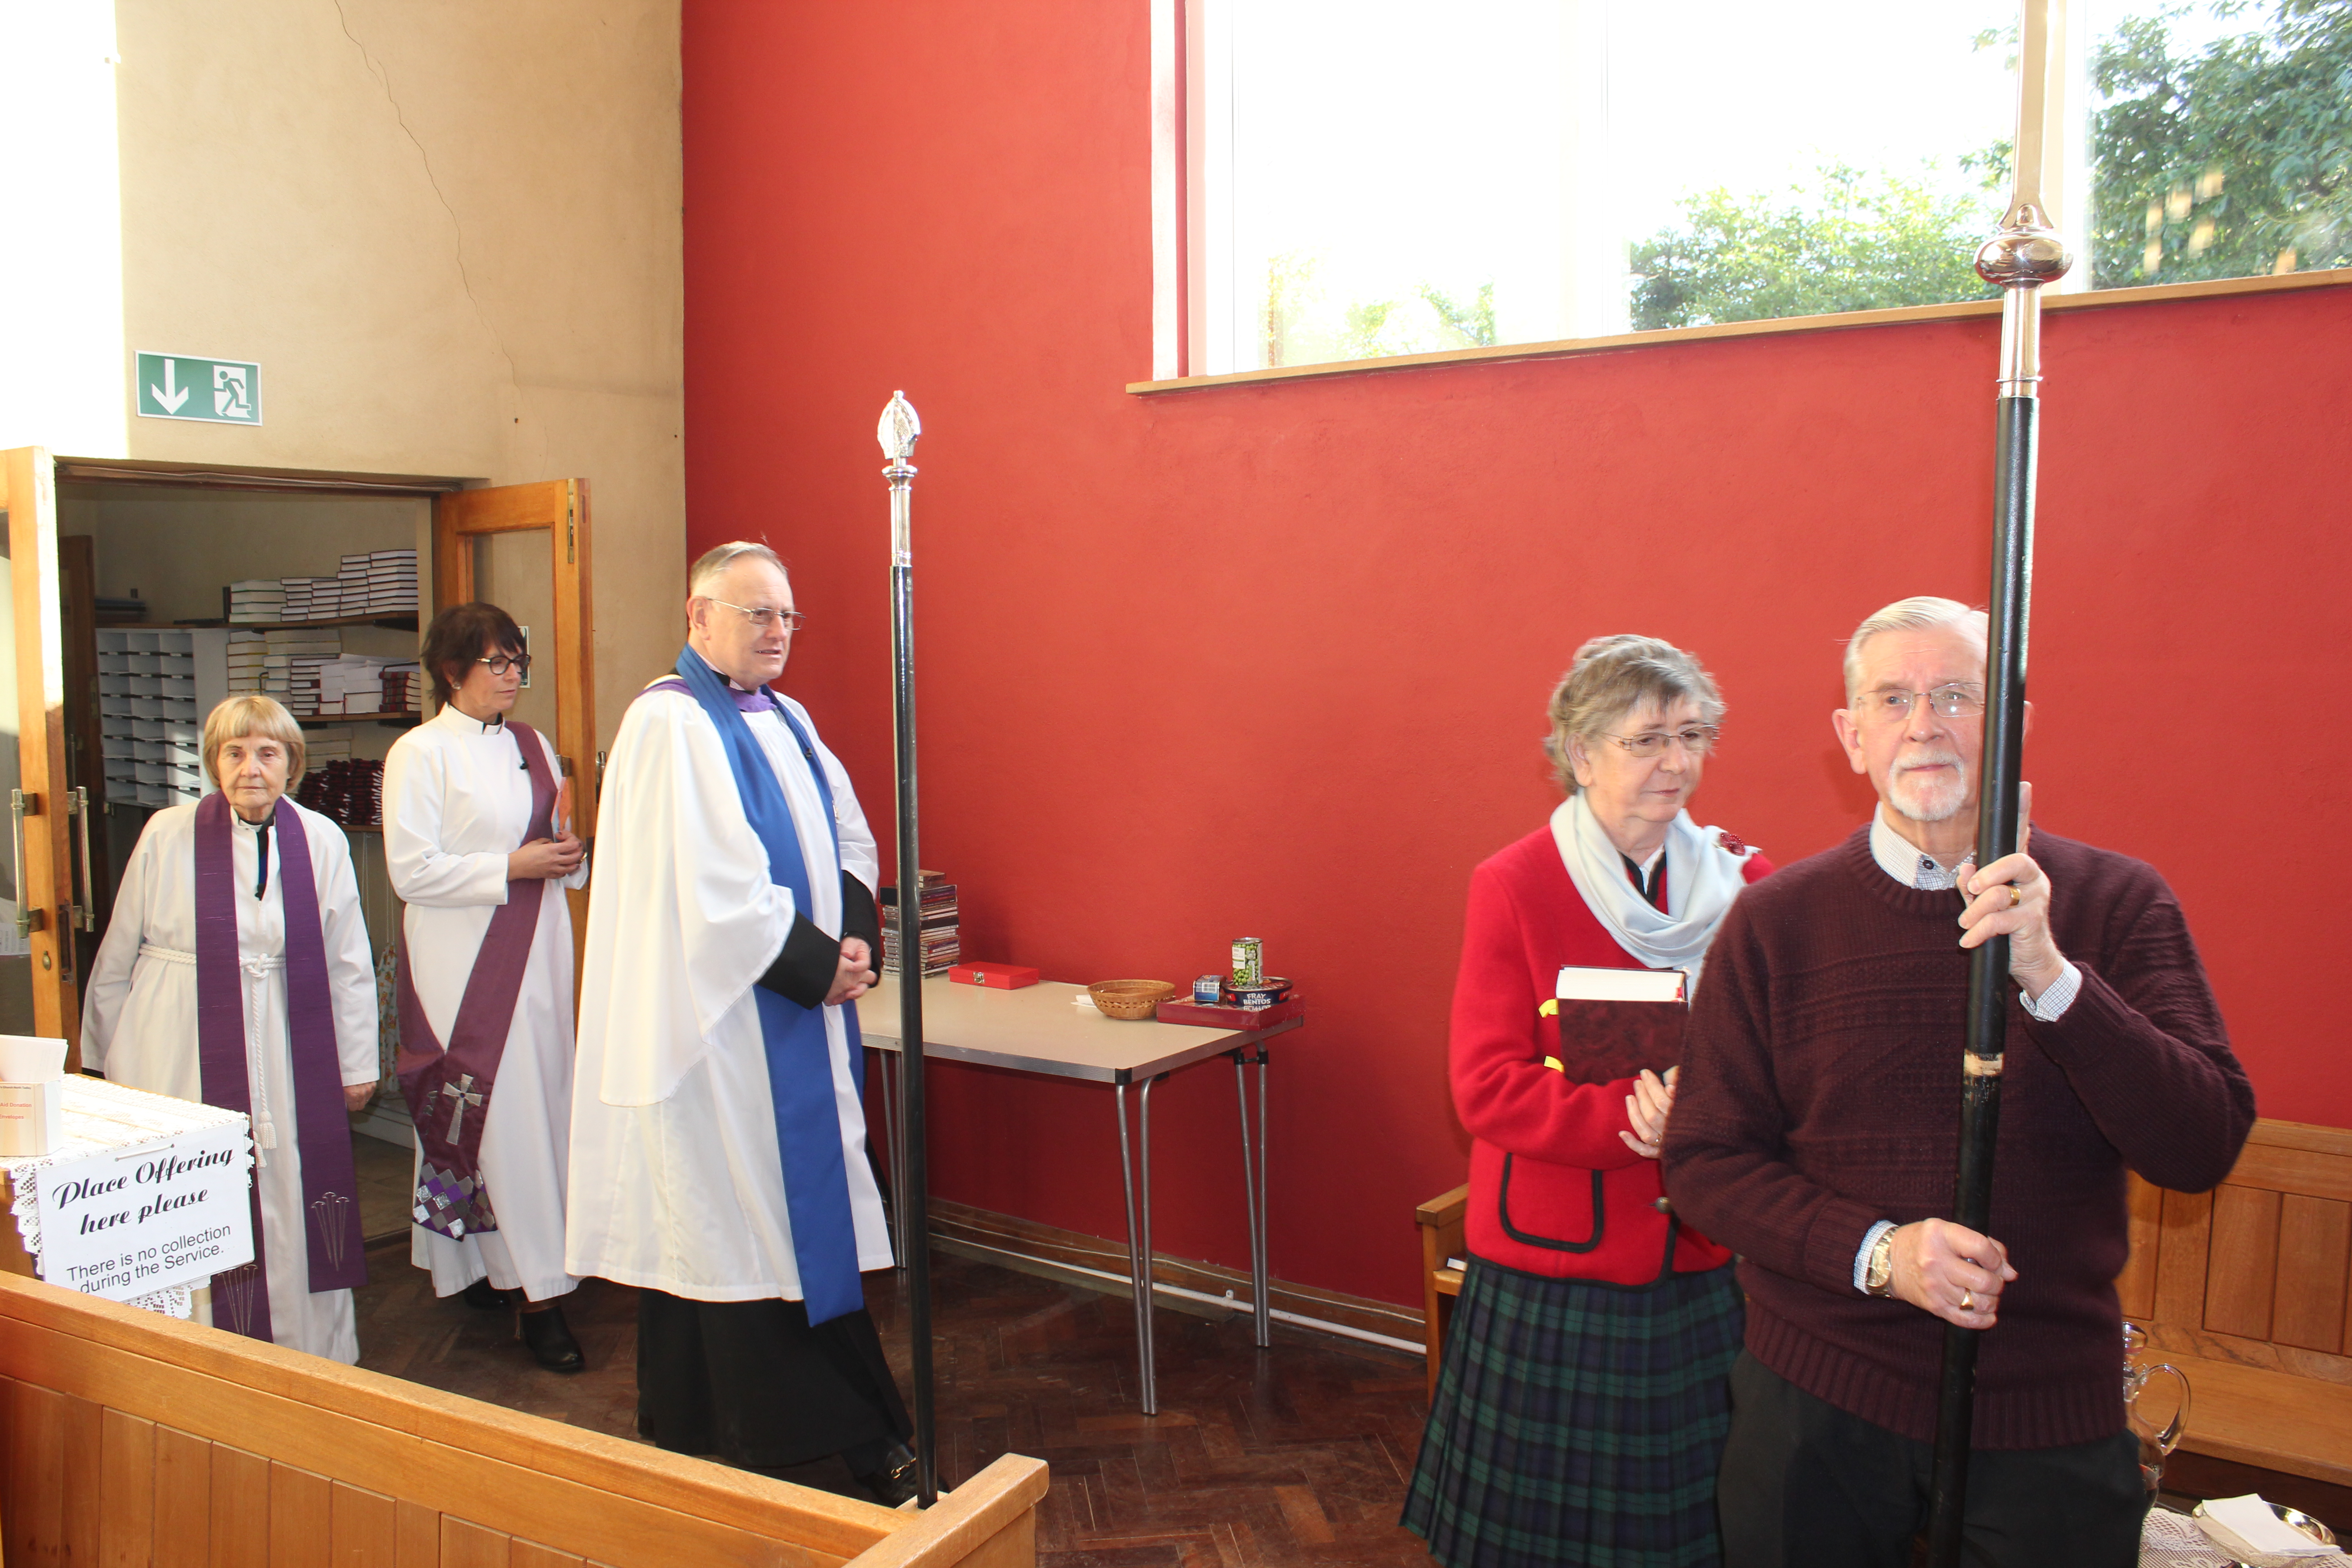 The Cross organist and Clergy